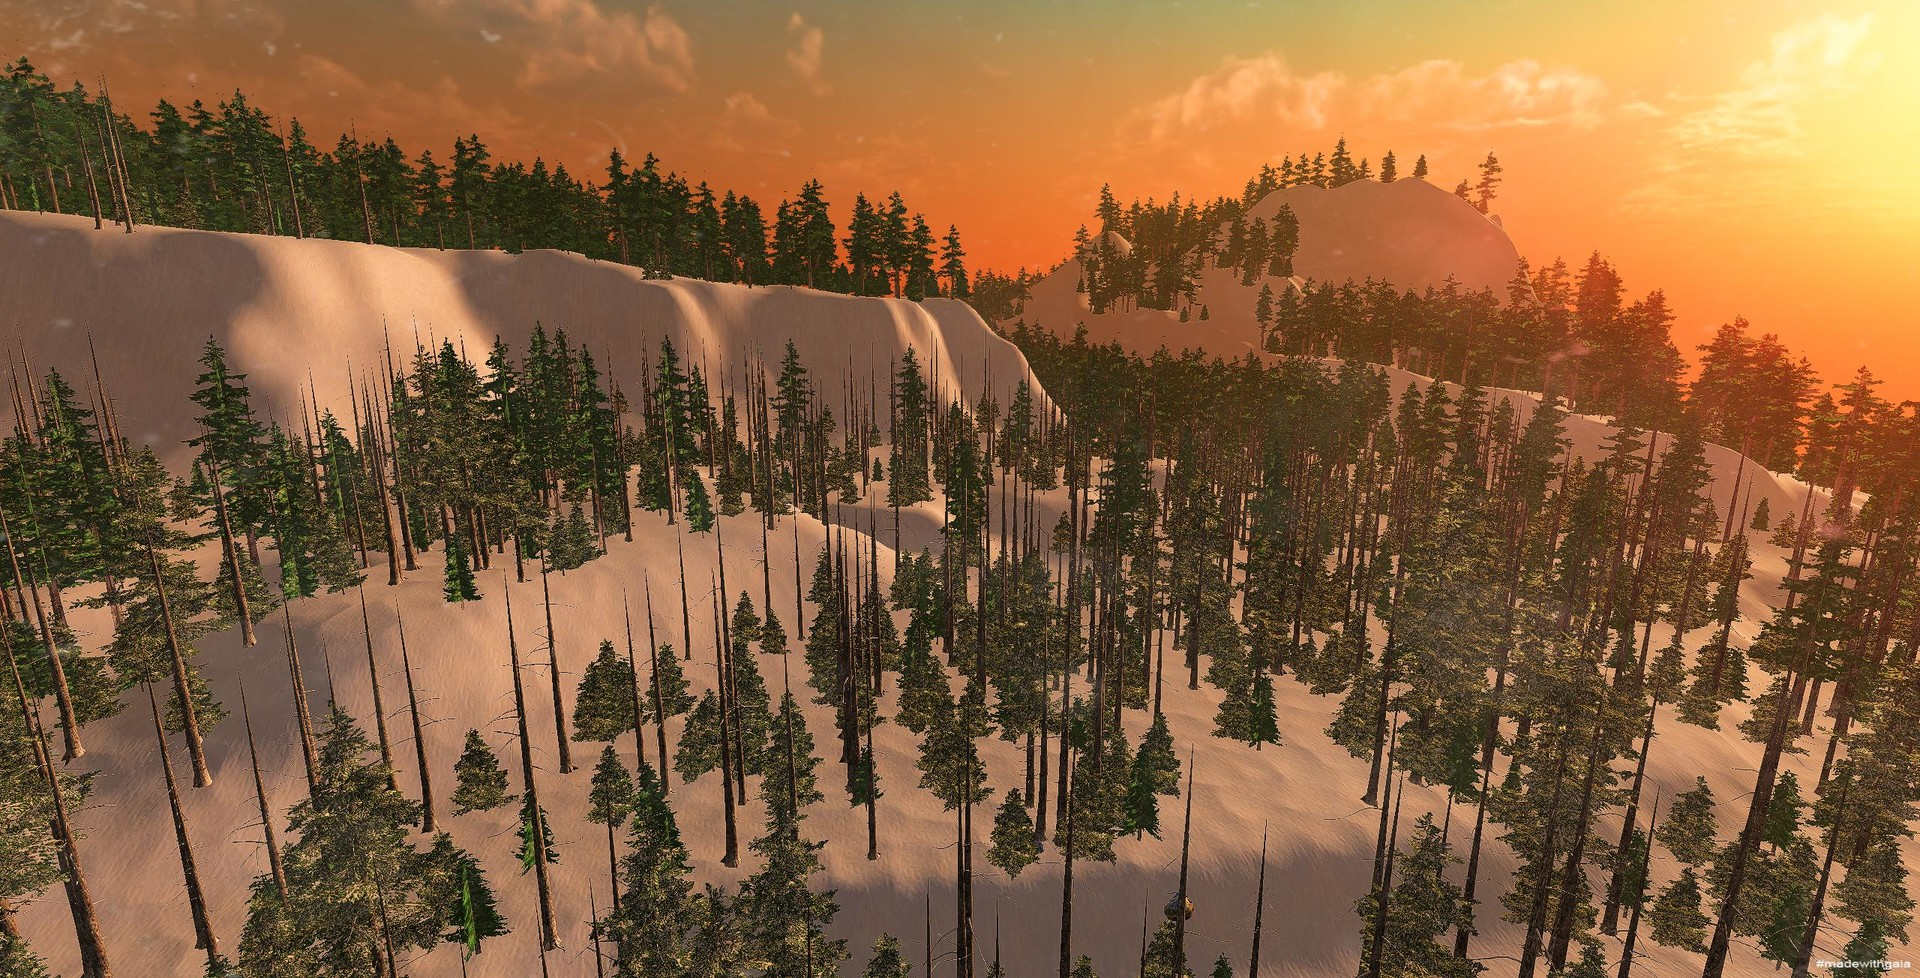 Later experiments with Unity environment, lighting and camera development for Arch-viz; much better camera and lighting, as well as snow.